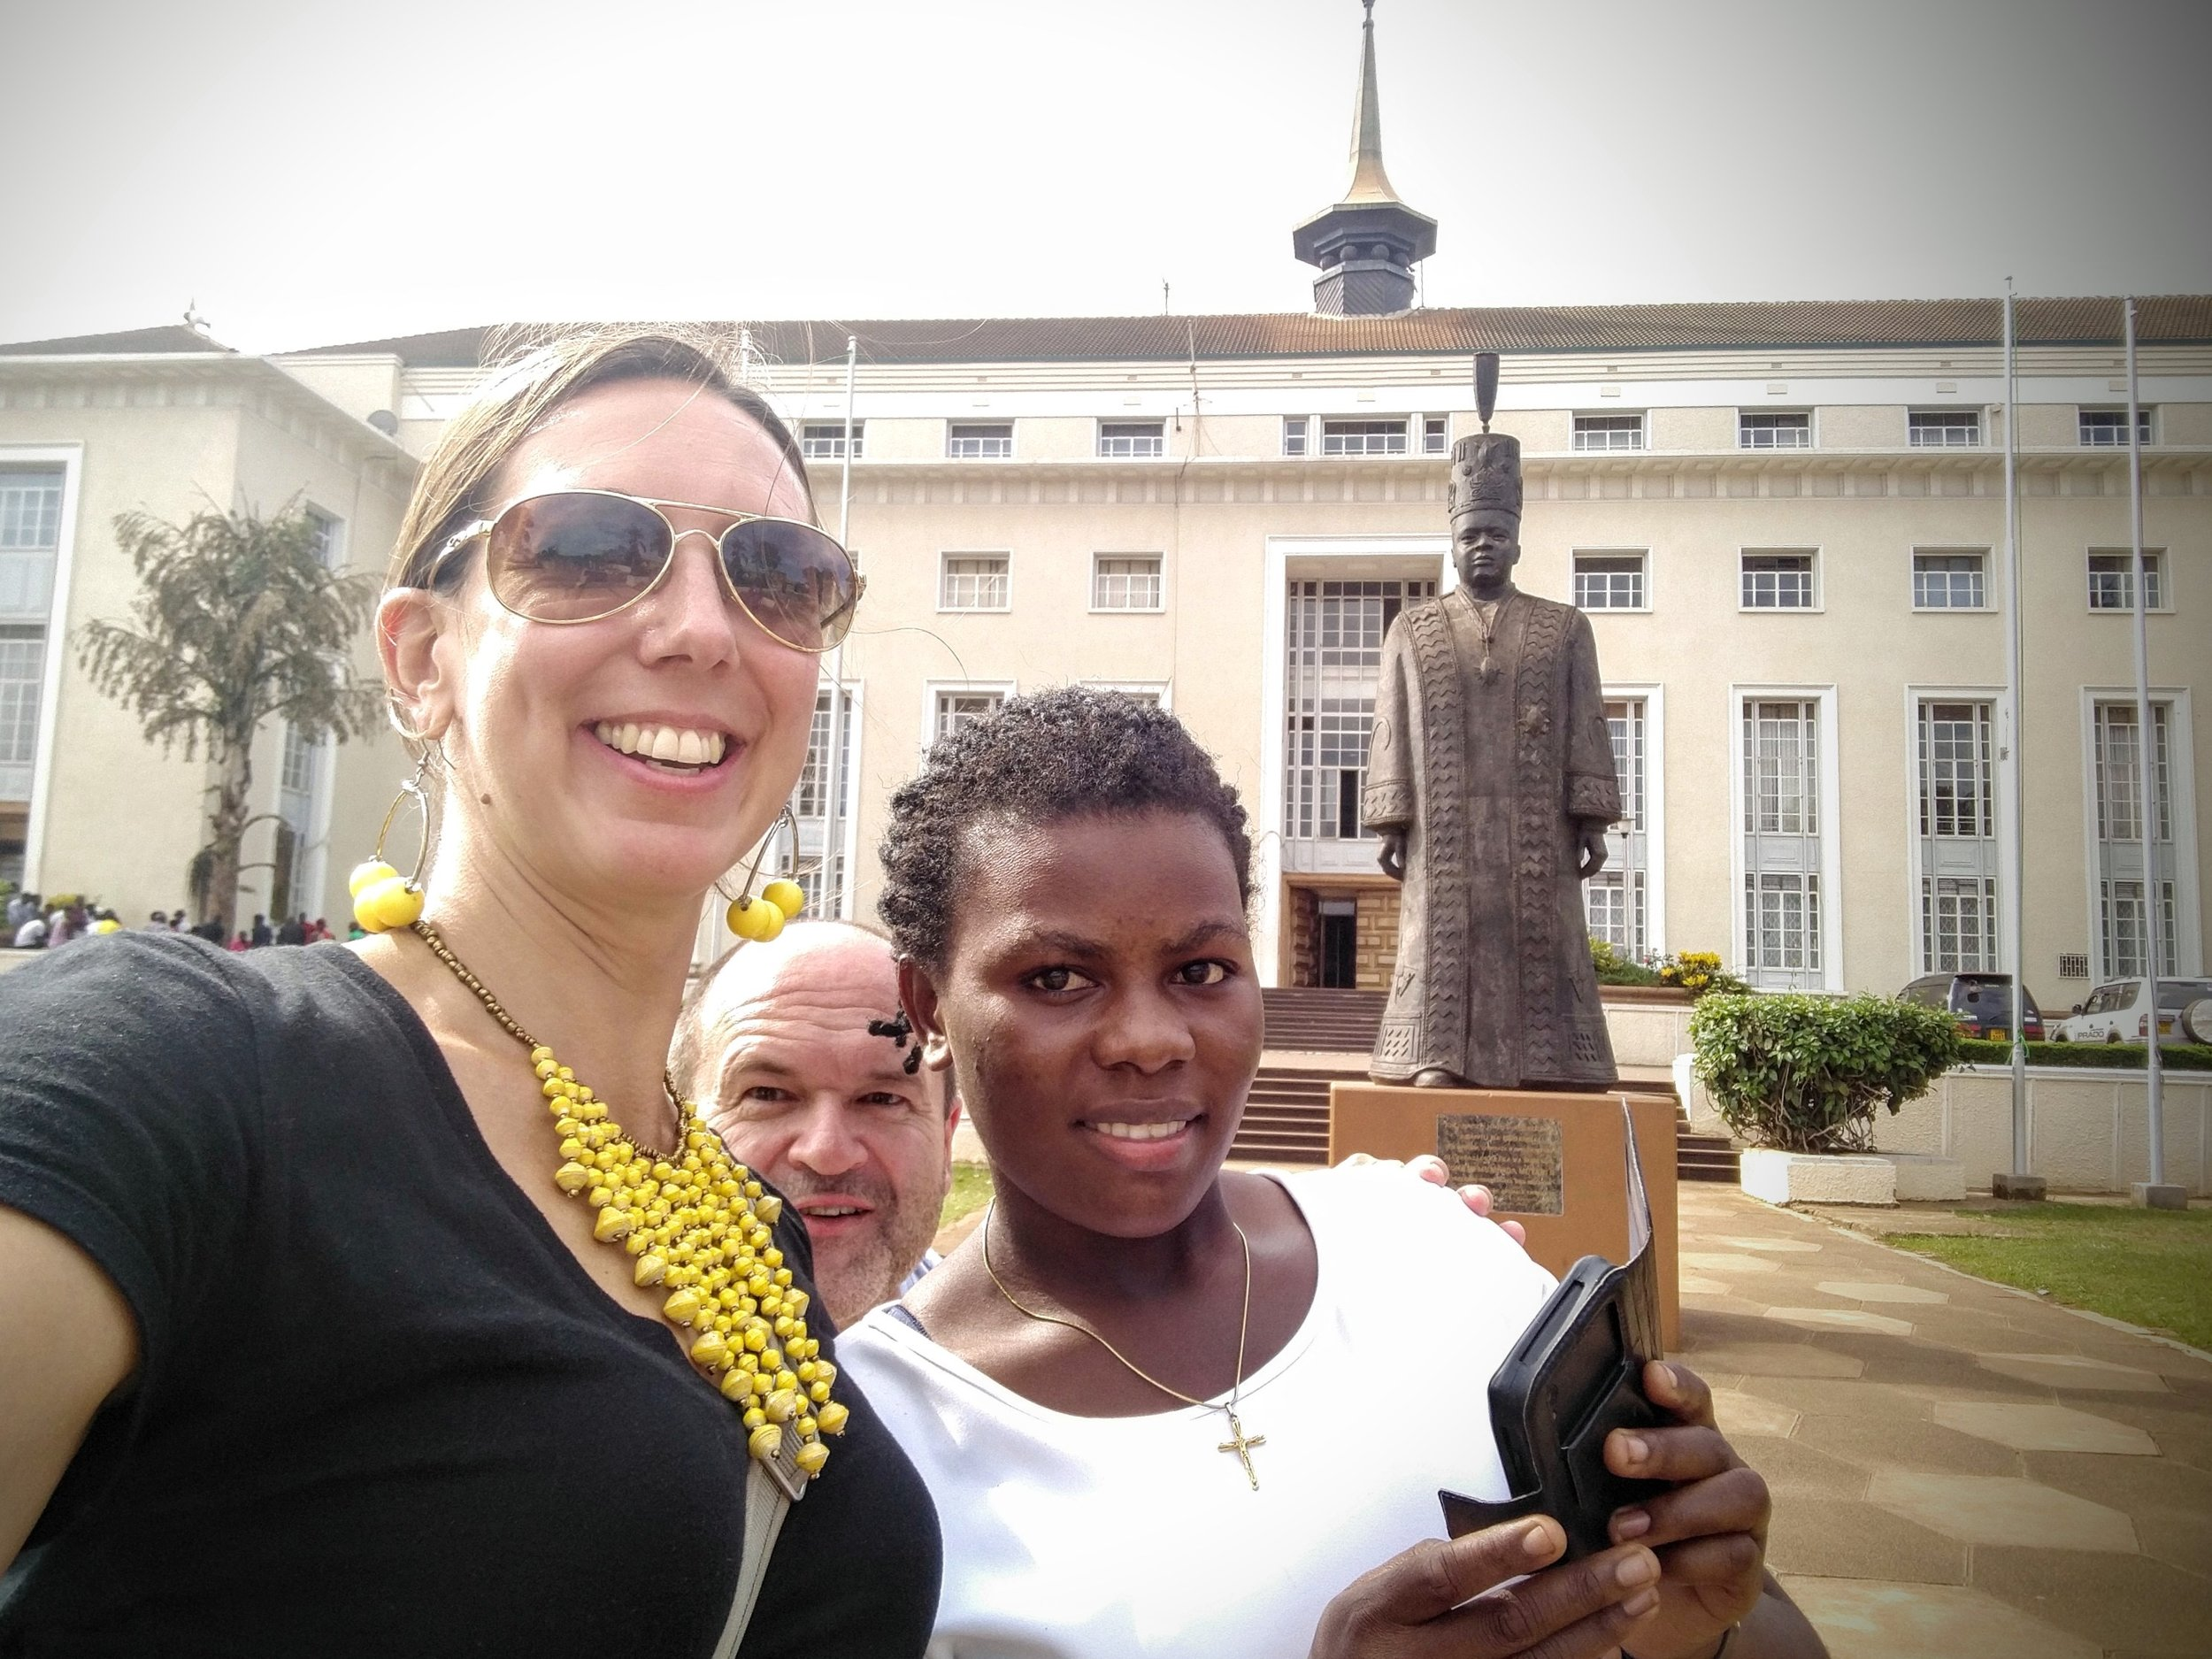 Selfie with Joan & I (and Randy's photo bomb) in front of the parliament building